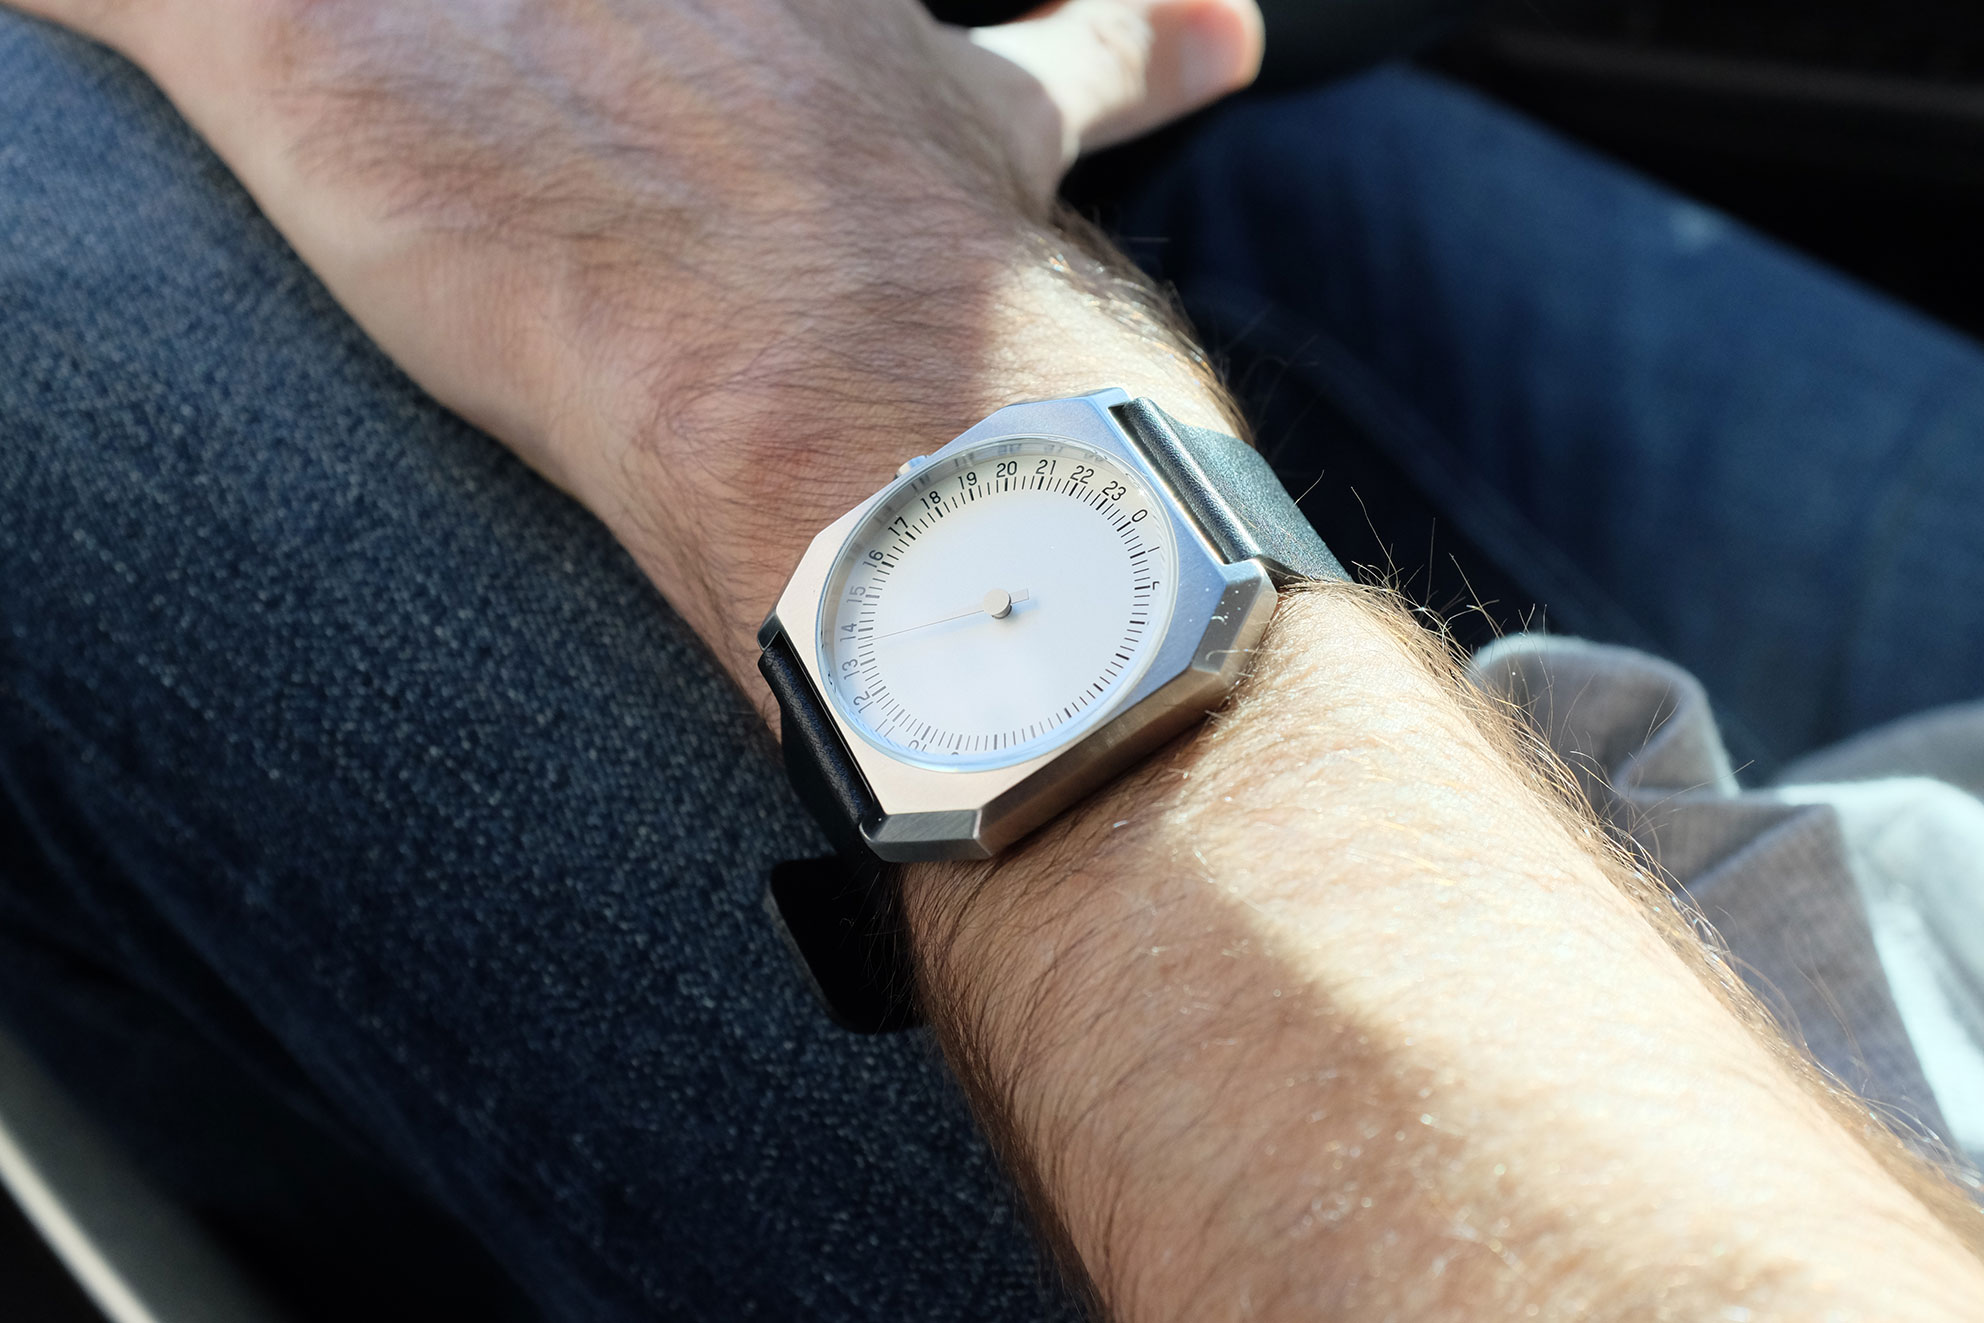 Slow Watches Celebrate the Slow Lifestyle